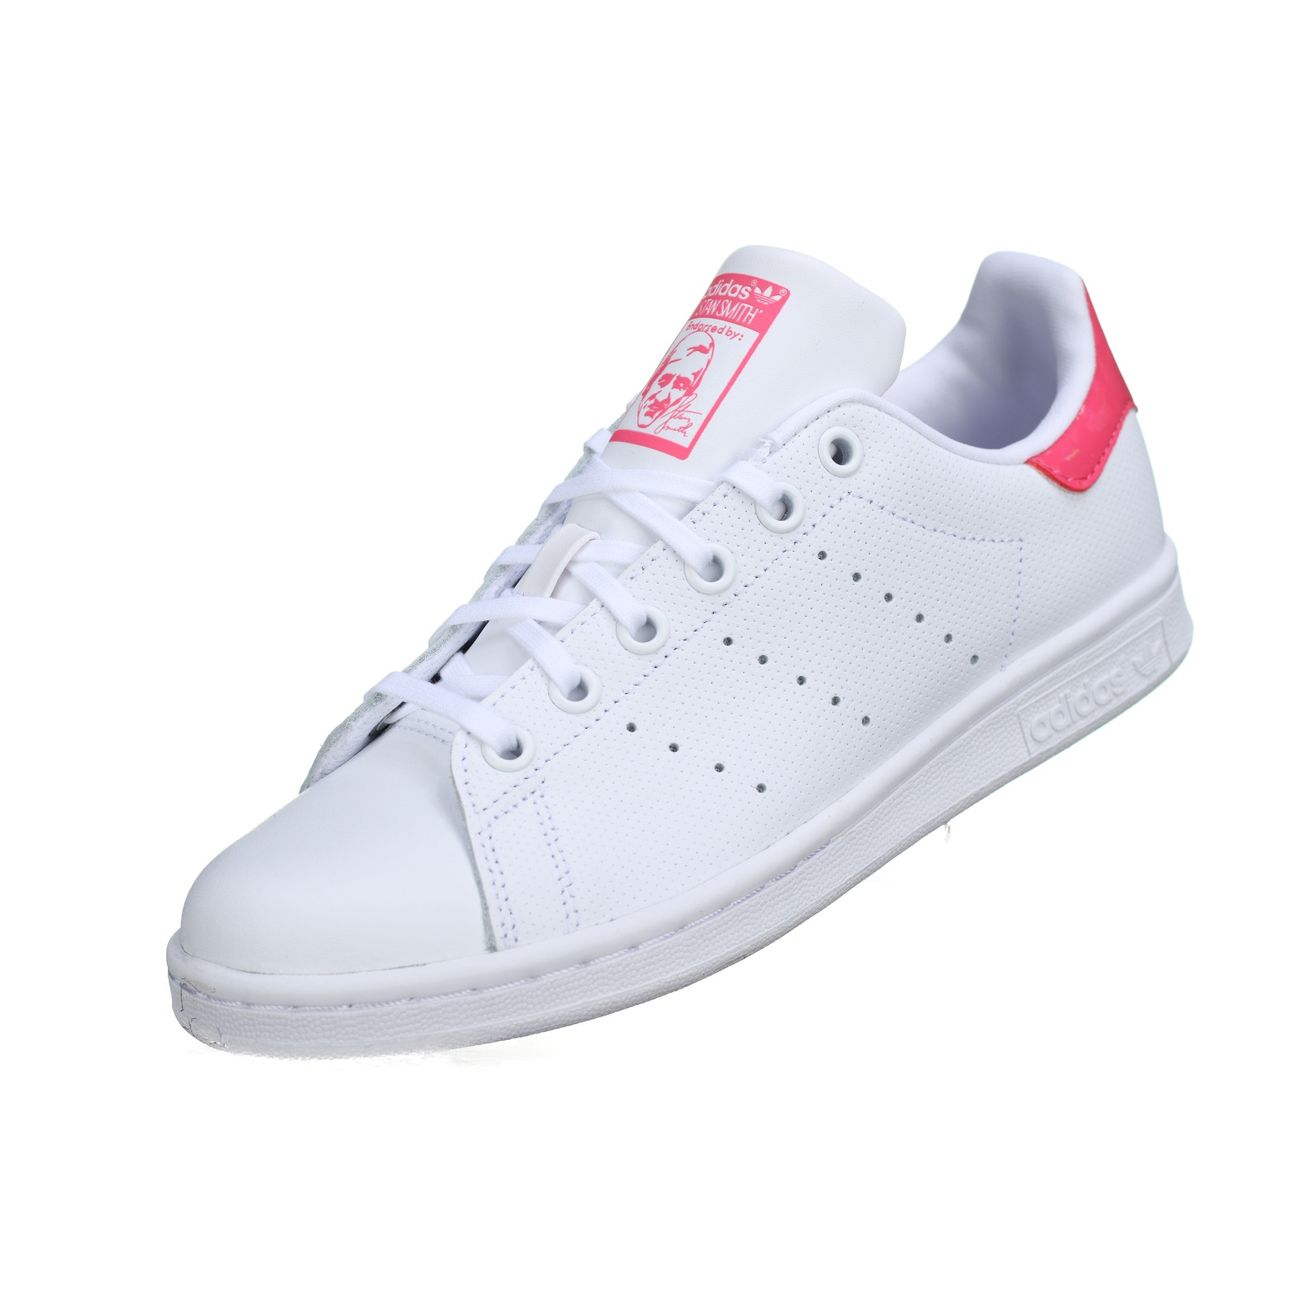 Mode- Lifestyle homme ADIDAS Basket Adidas Stan Smith J Db1207 Blanc / Rose